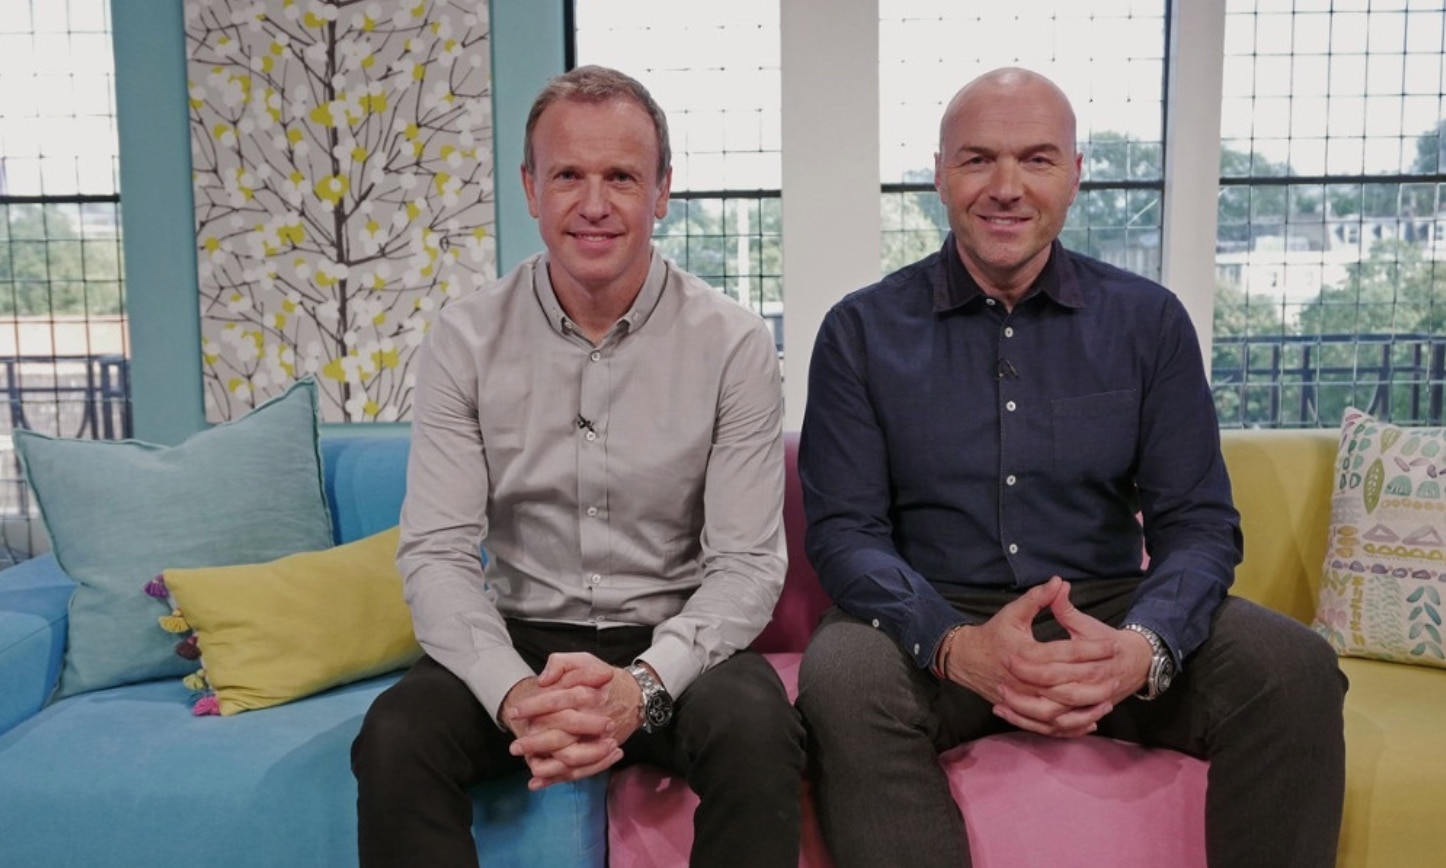 Vote for Sunday Brunch in the National Television Awards